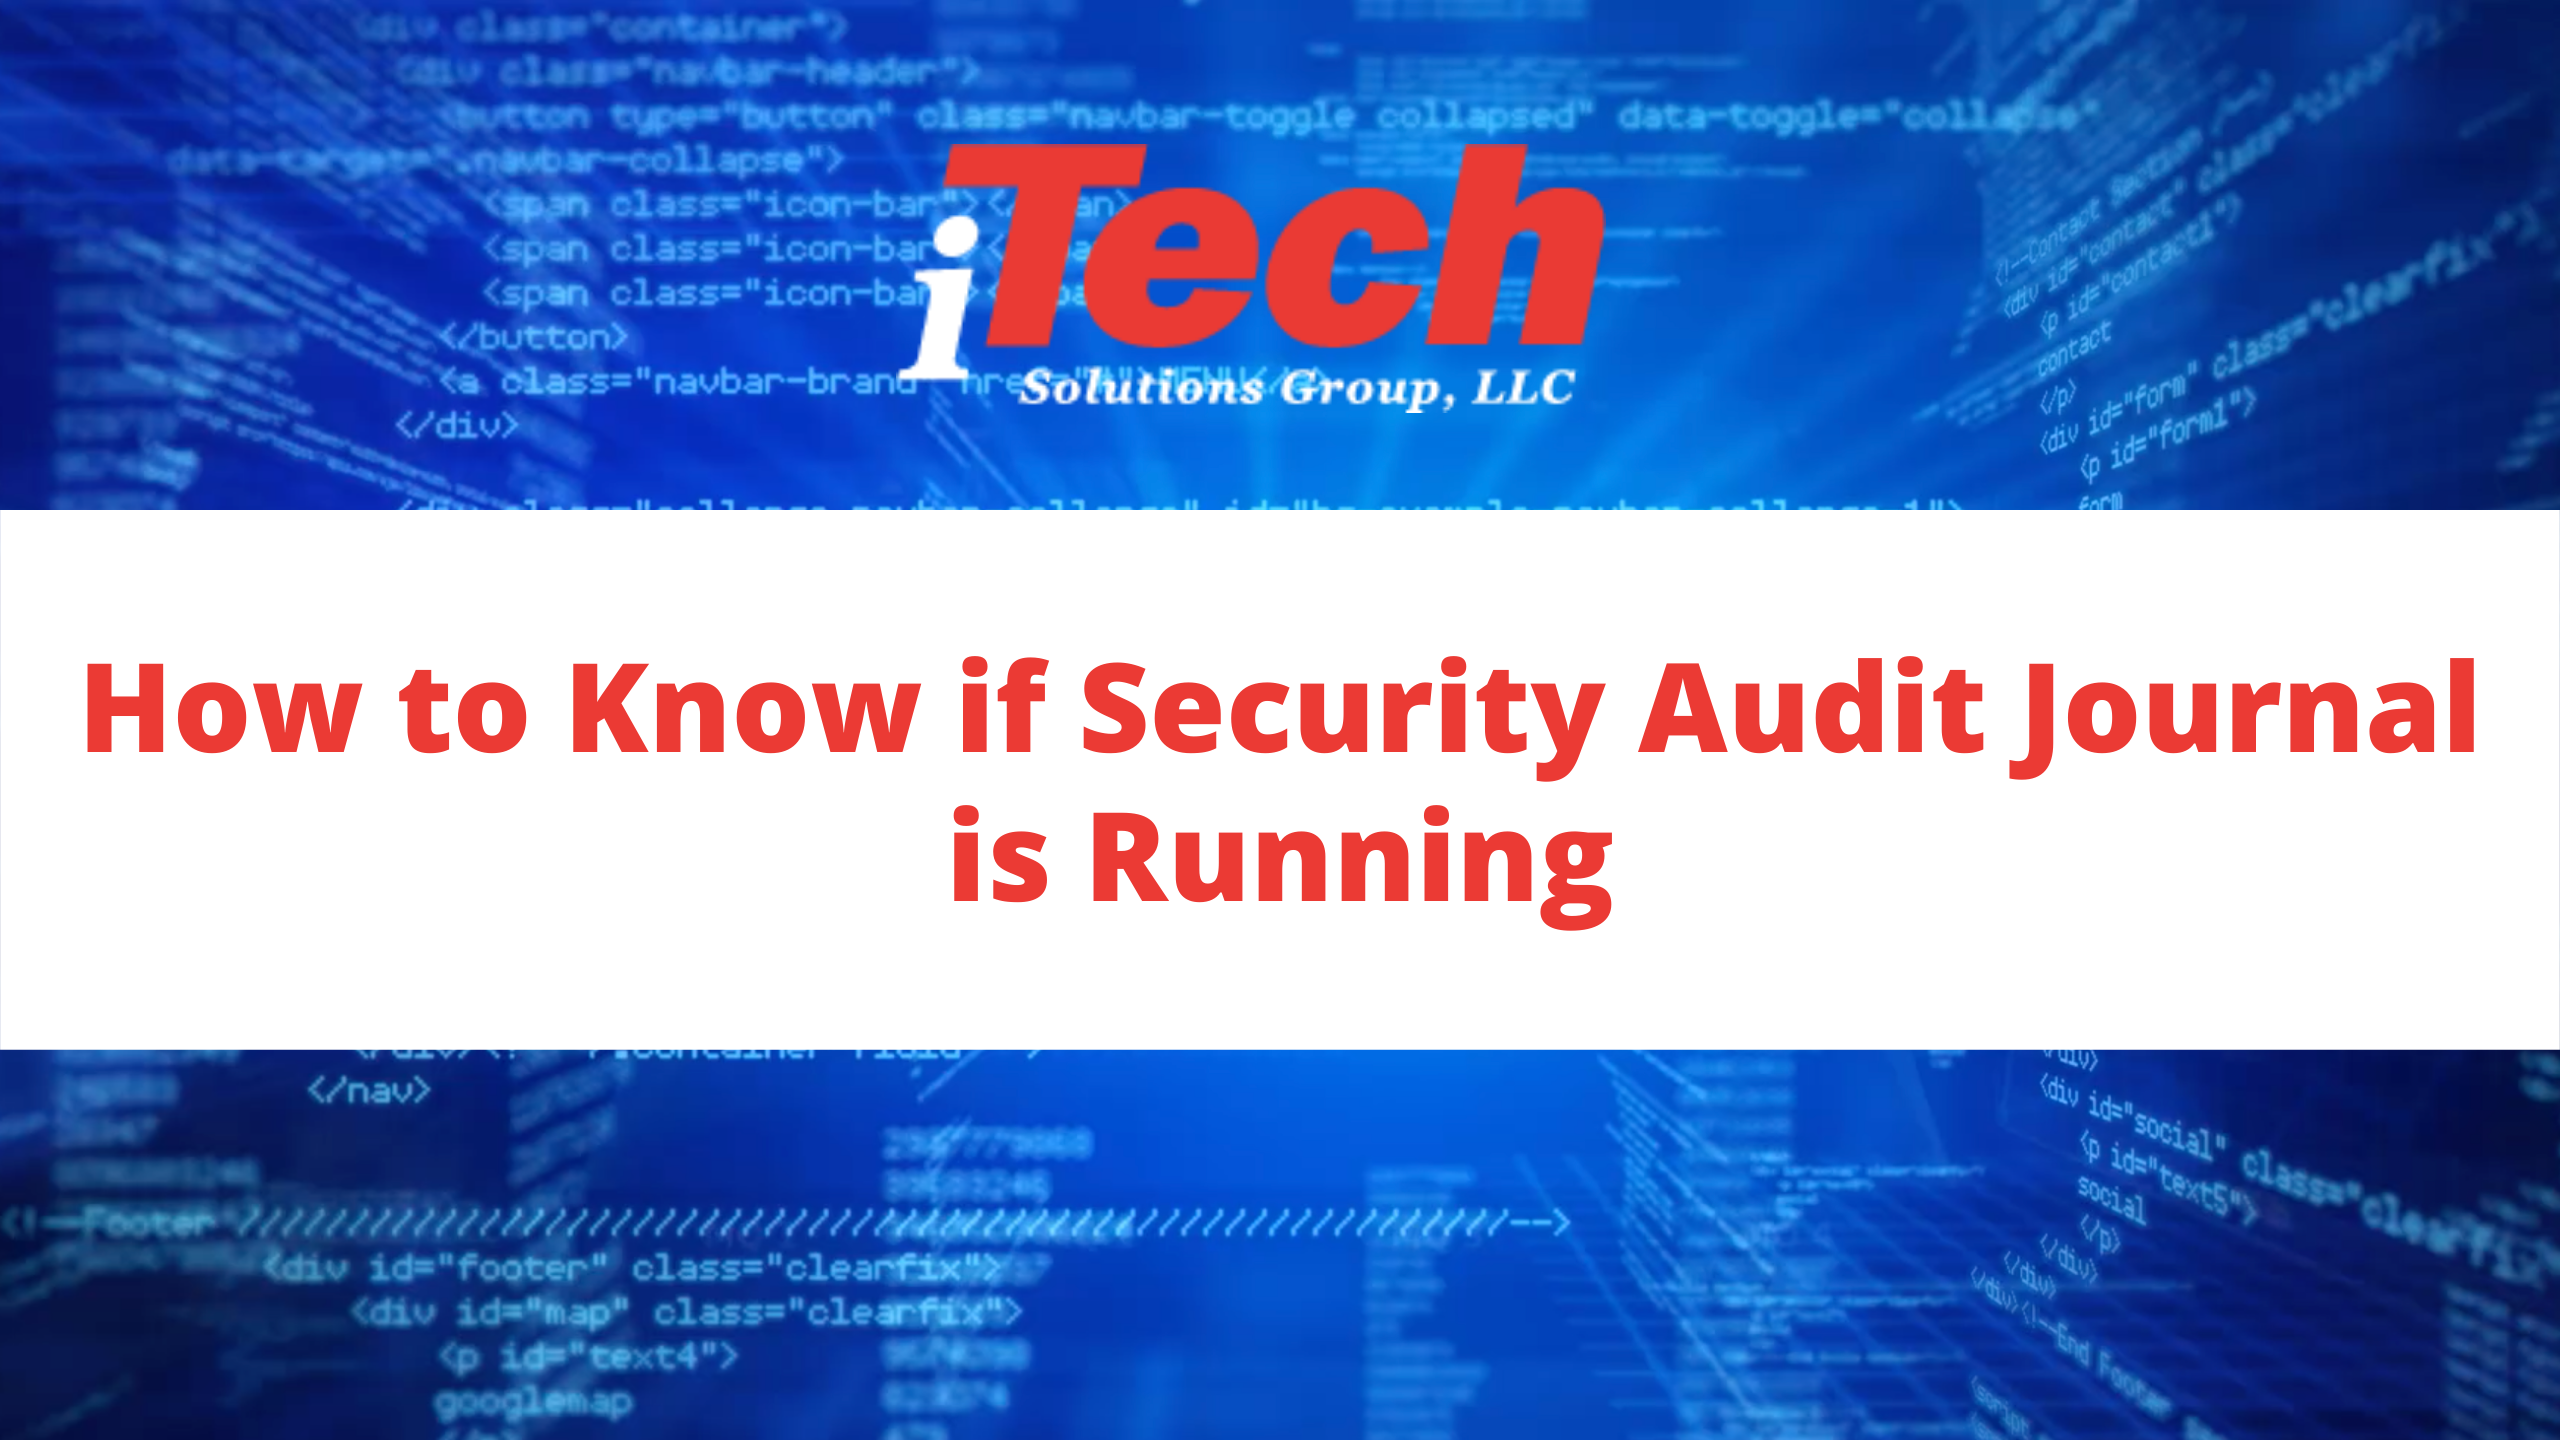 How to Know if Security Audit Journal is Running (1)